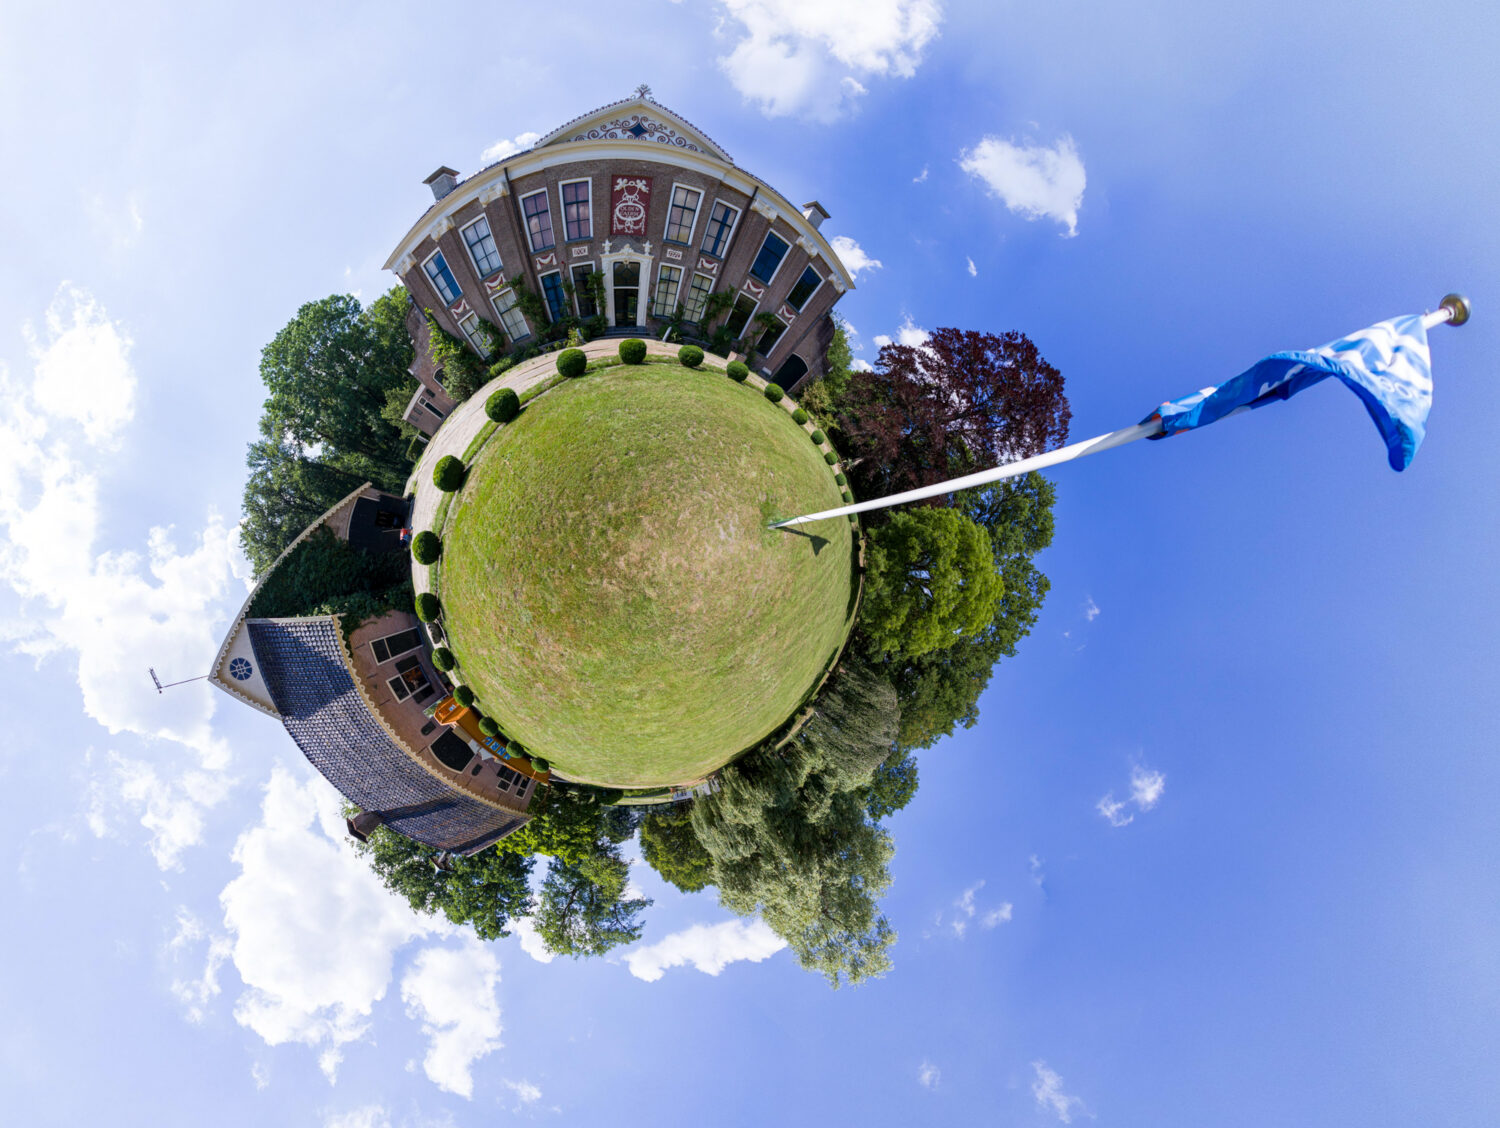 Little Planet foto van havezate De Oldengaerde Dwingeloo